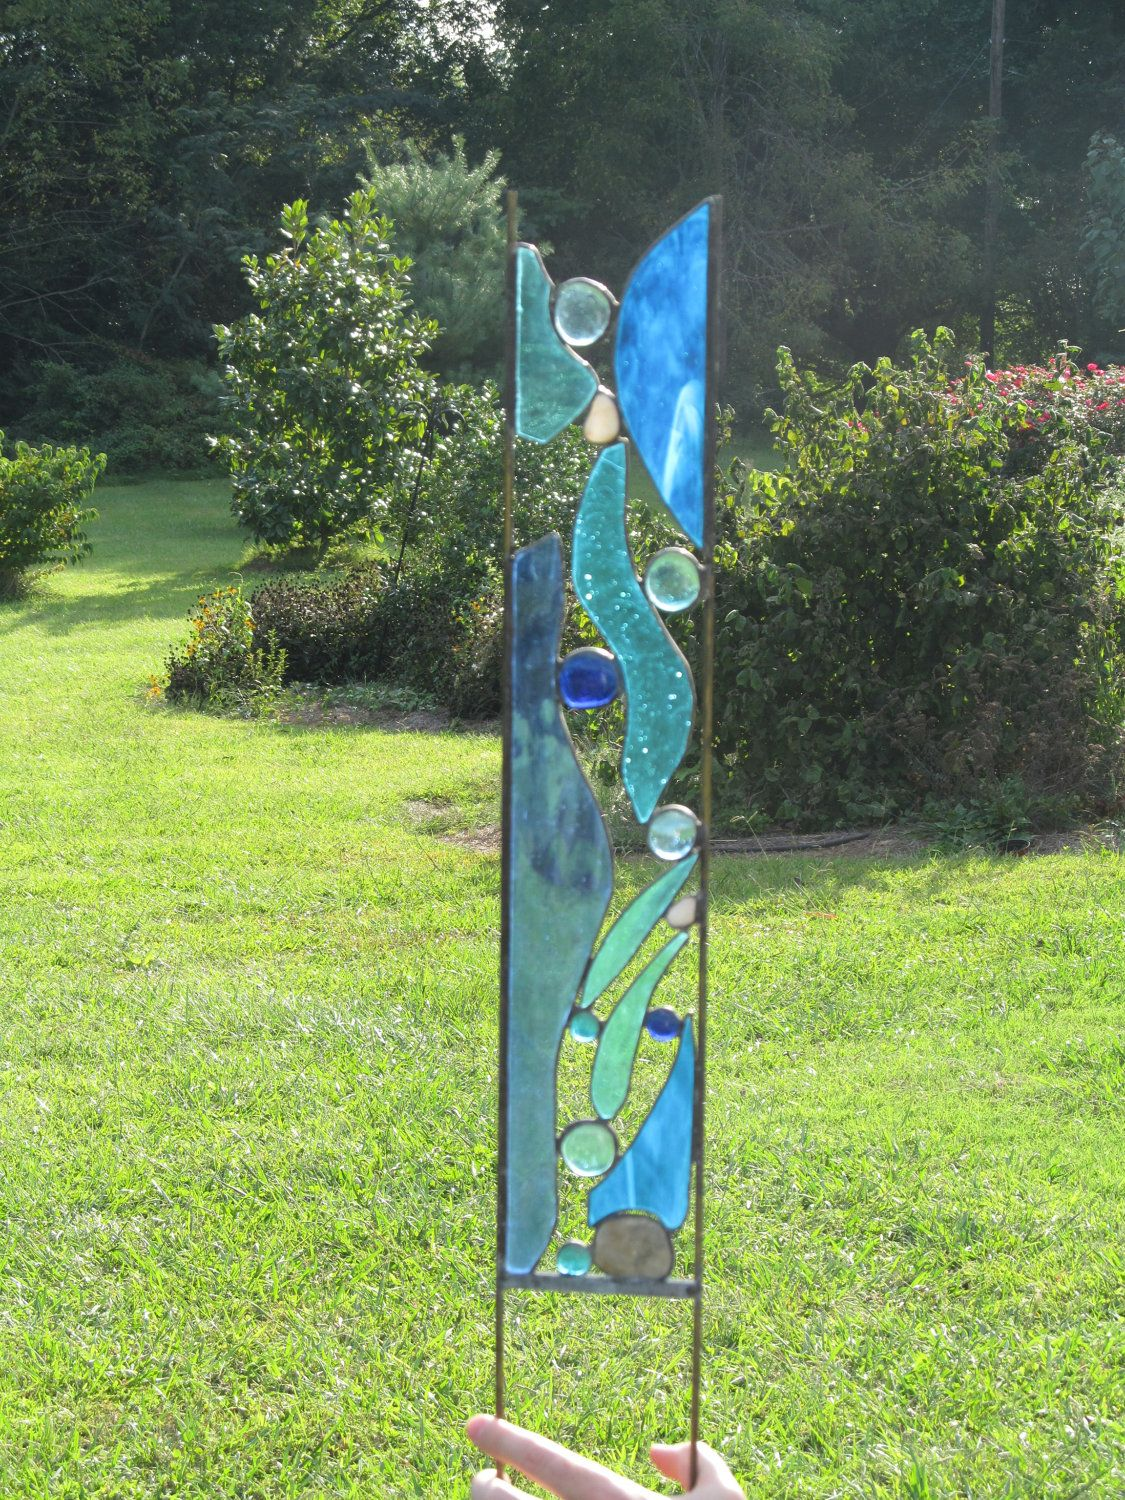 Fused glass yard art - Stained Glass Garden Stake Mountain Stream Yard Art Garden Panel Blue Glass River Rocks